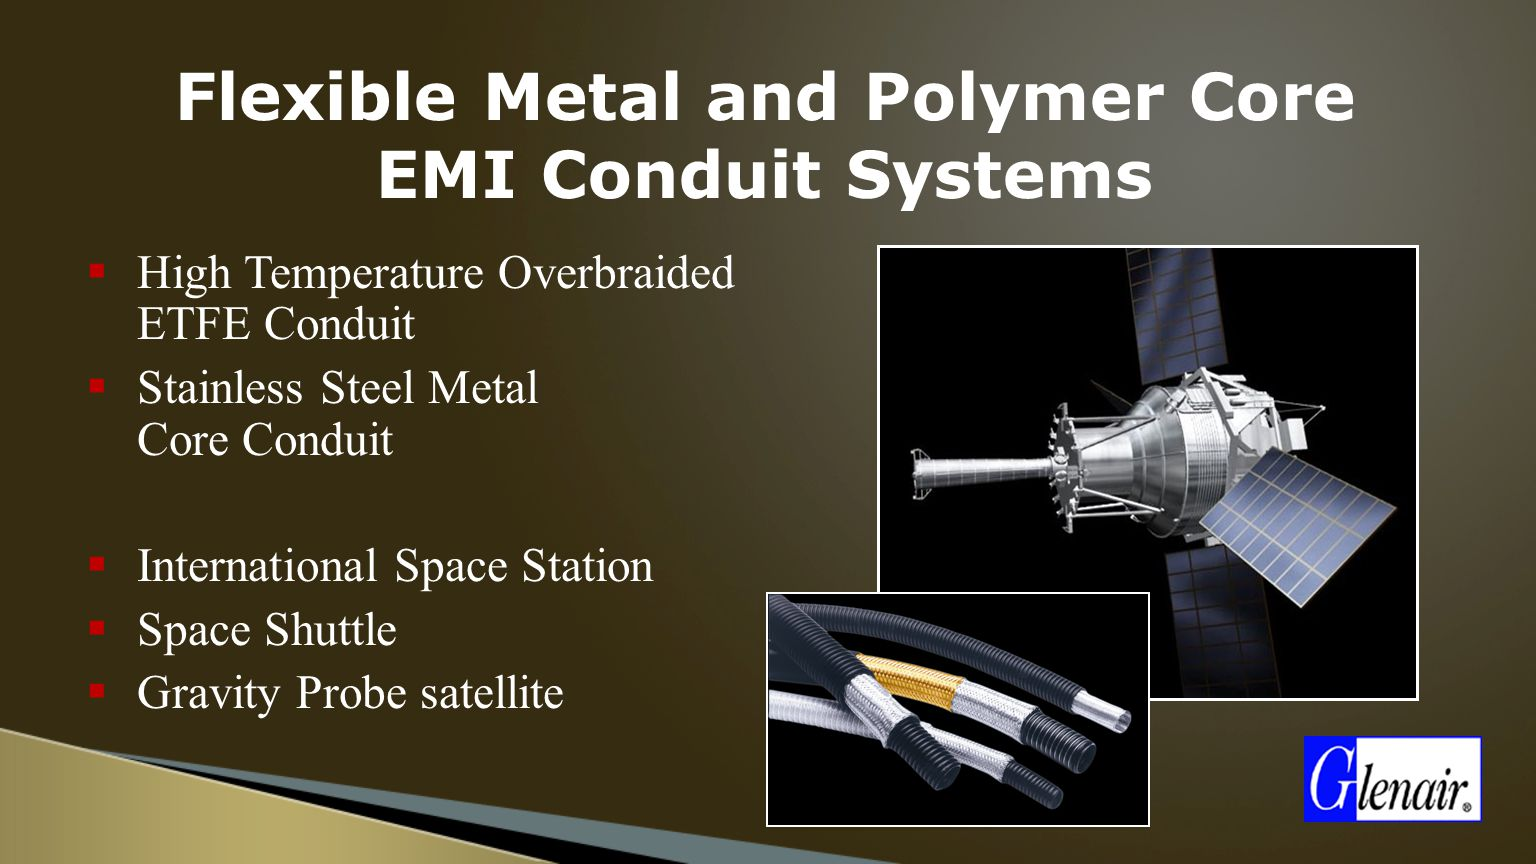 Flexible+Metal+and+Polymer+Core+EMI+Conduit+Systems space grade interconnect solutions ppt video online download  at crackthecode.co